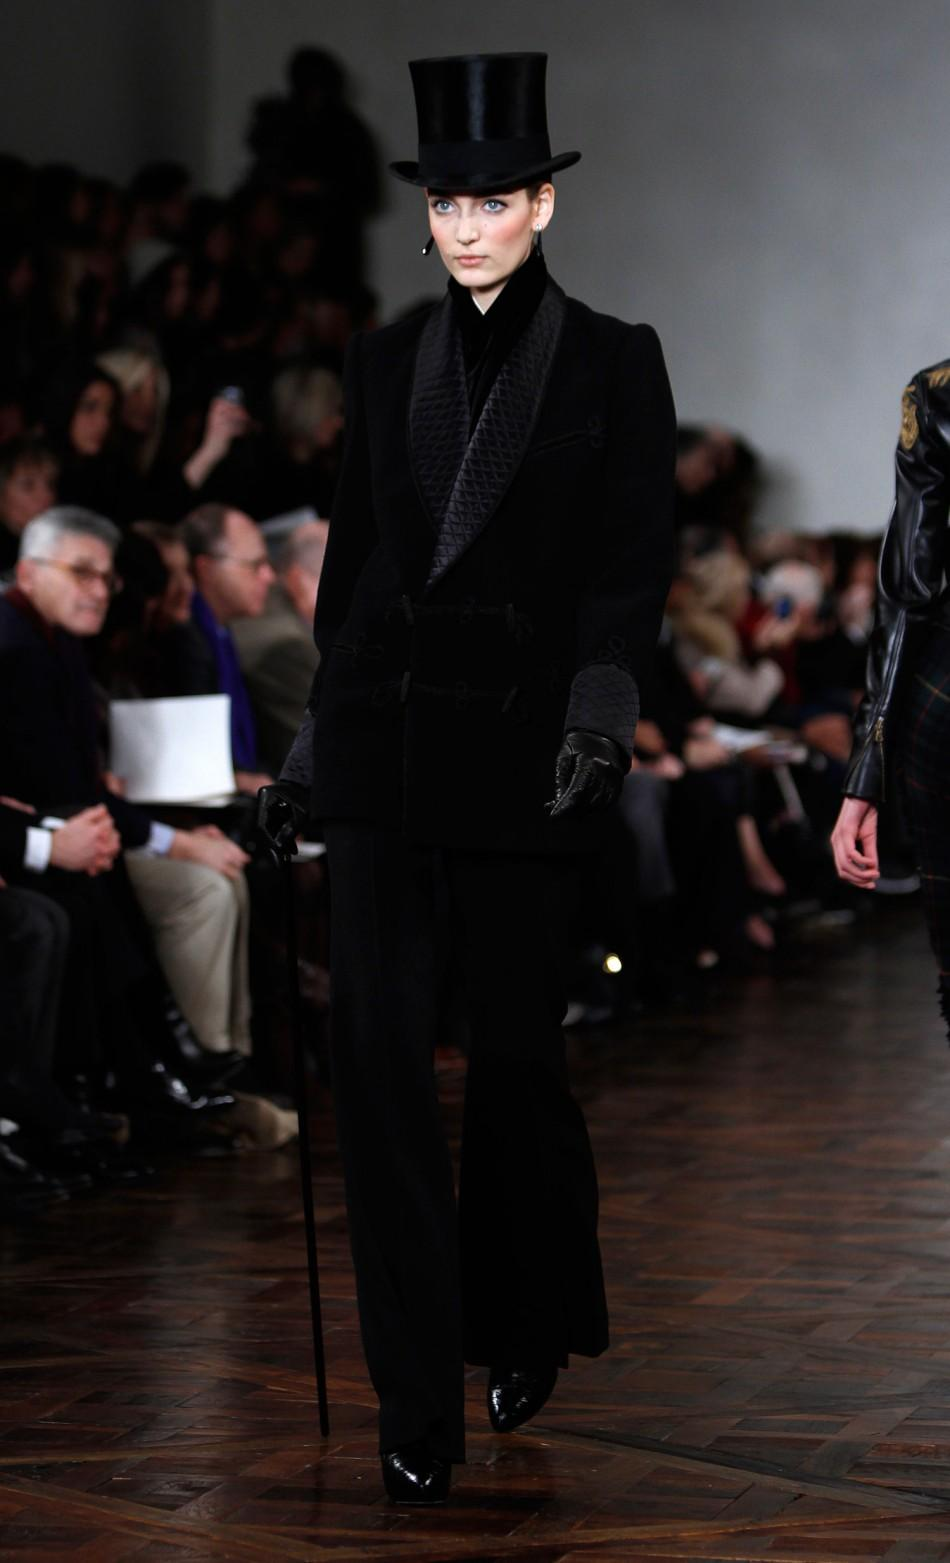 Ralph Lauren's 'Very British' Collection at the 2012 NY Fashion Week Finale